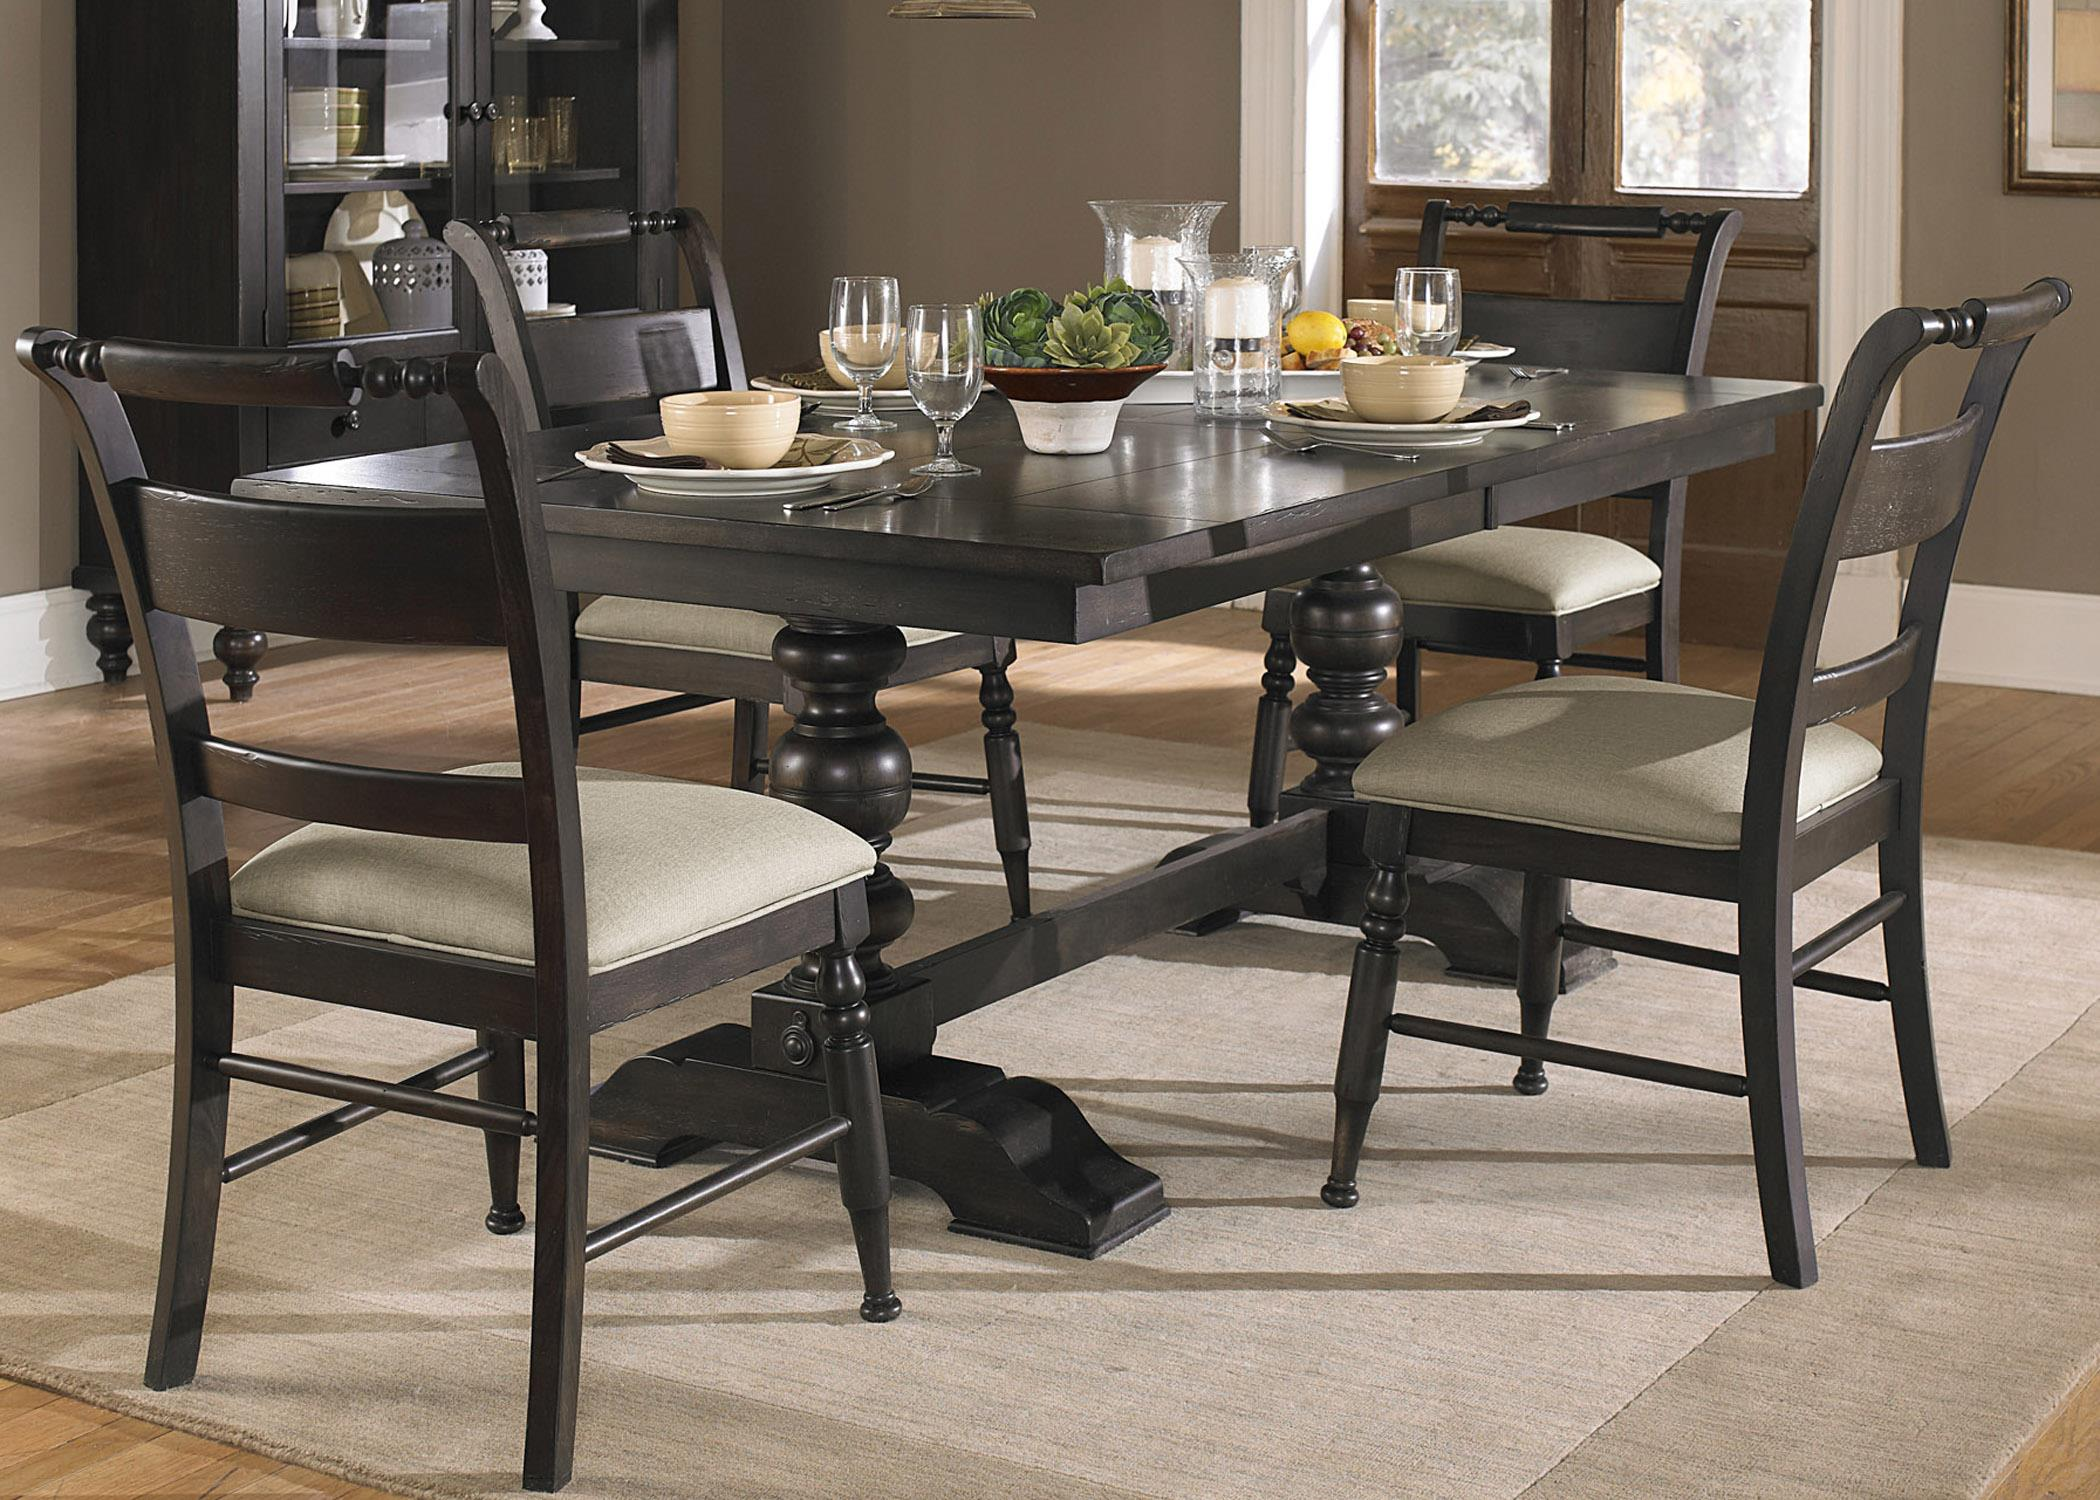 Whitney 5 Piece Trestle Table Set  by Liberty Furniture at Lapeer Furniture & Mattress Center